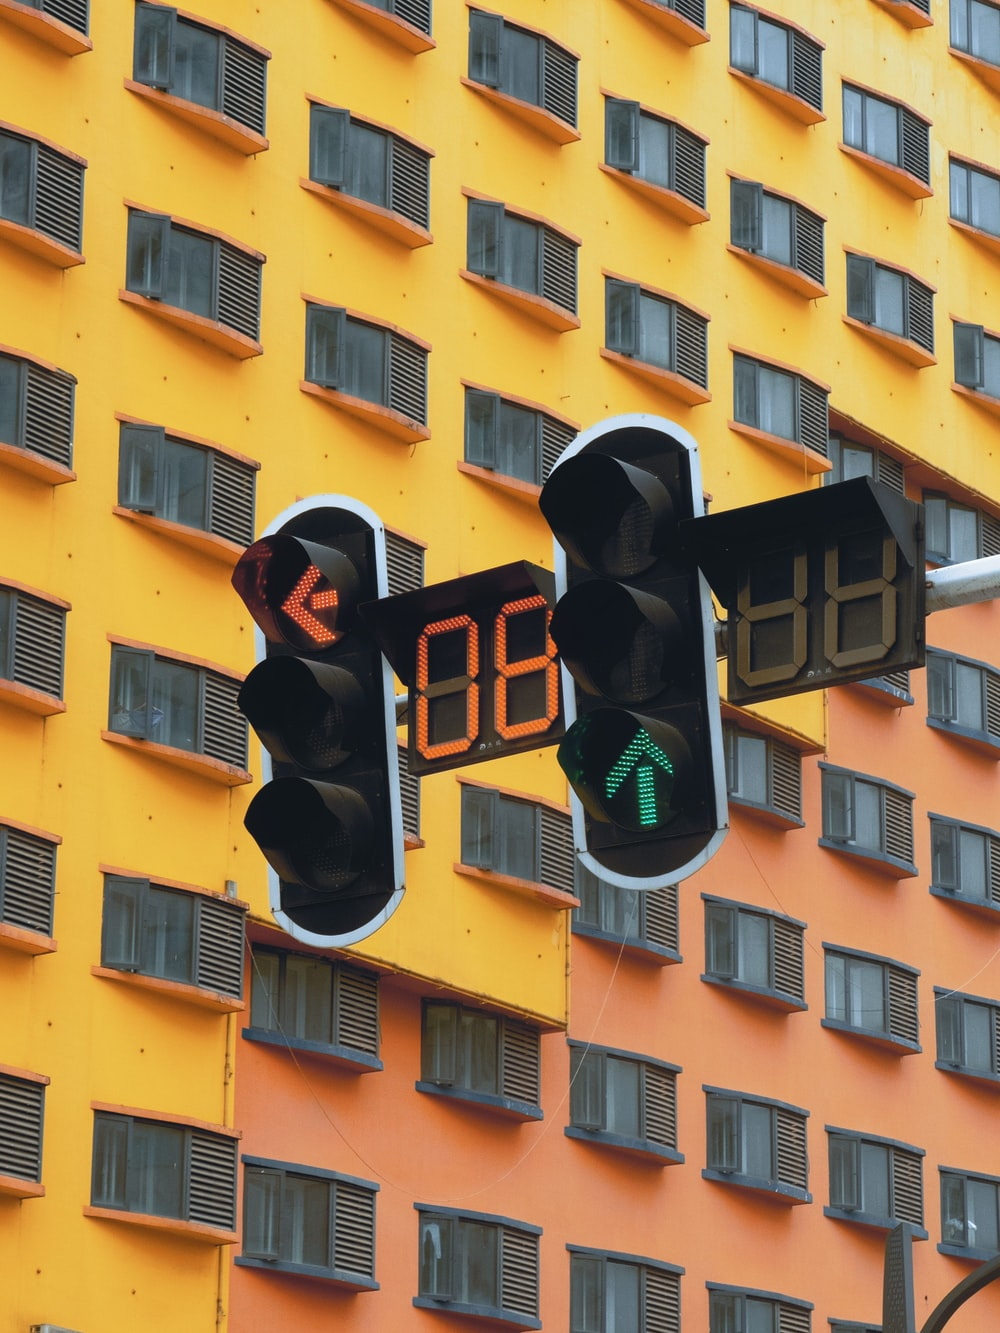 two traffic lights